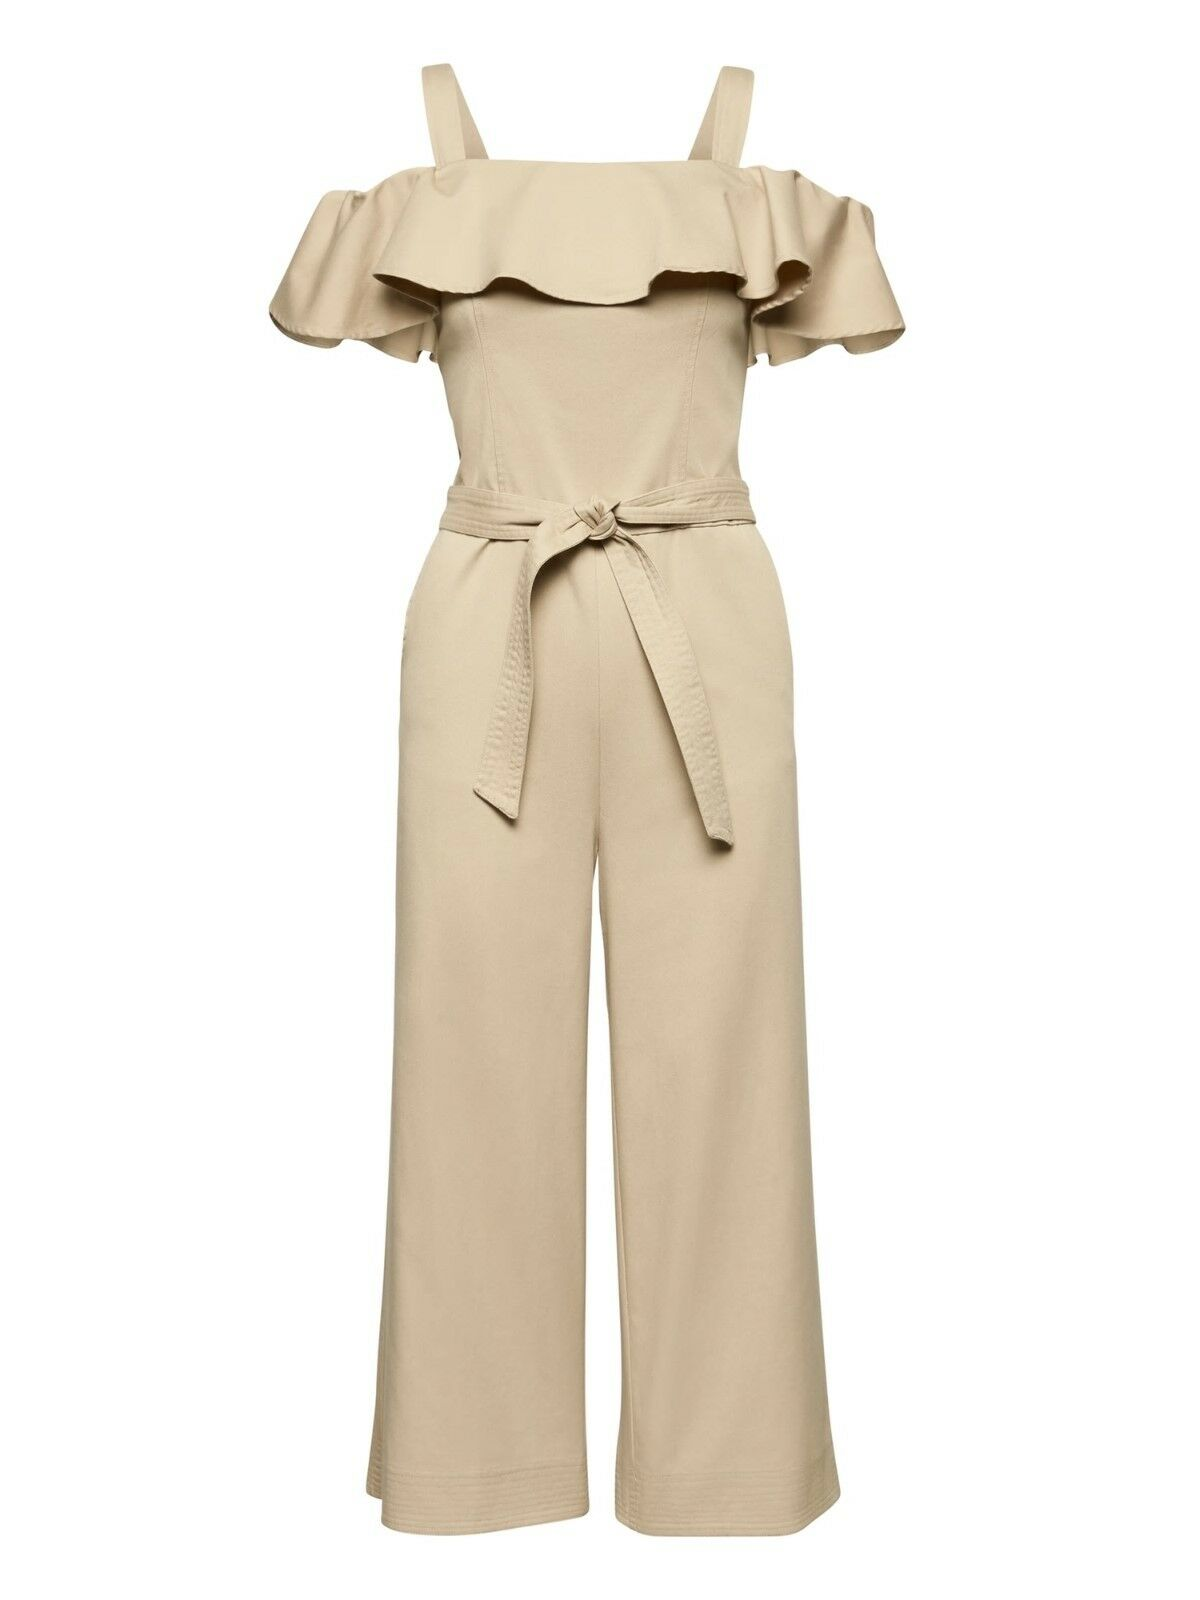 Banana Republic Twill Off-the-Shoulder Cropped Jumpsuit, Sz 16 Tall golden Beige